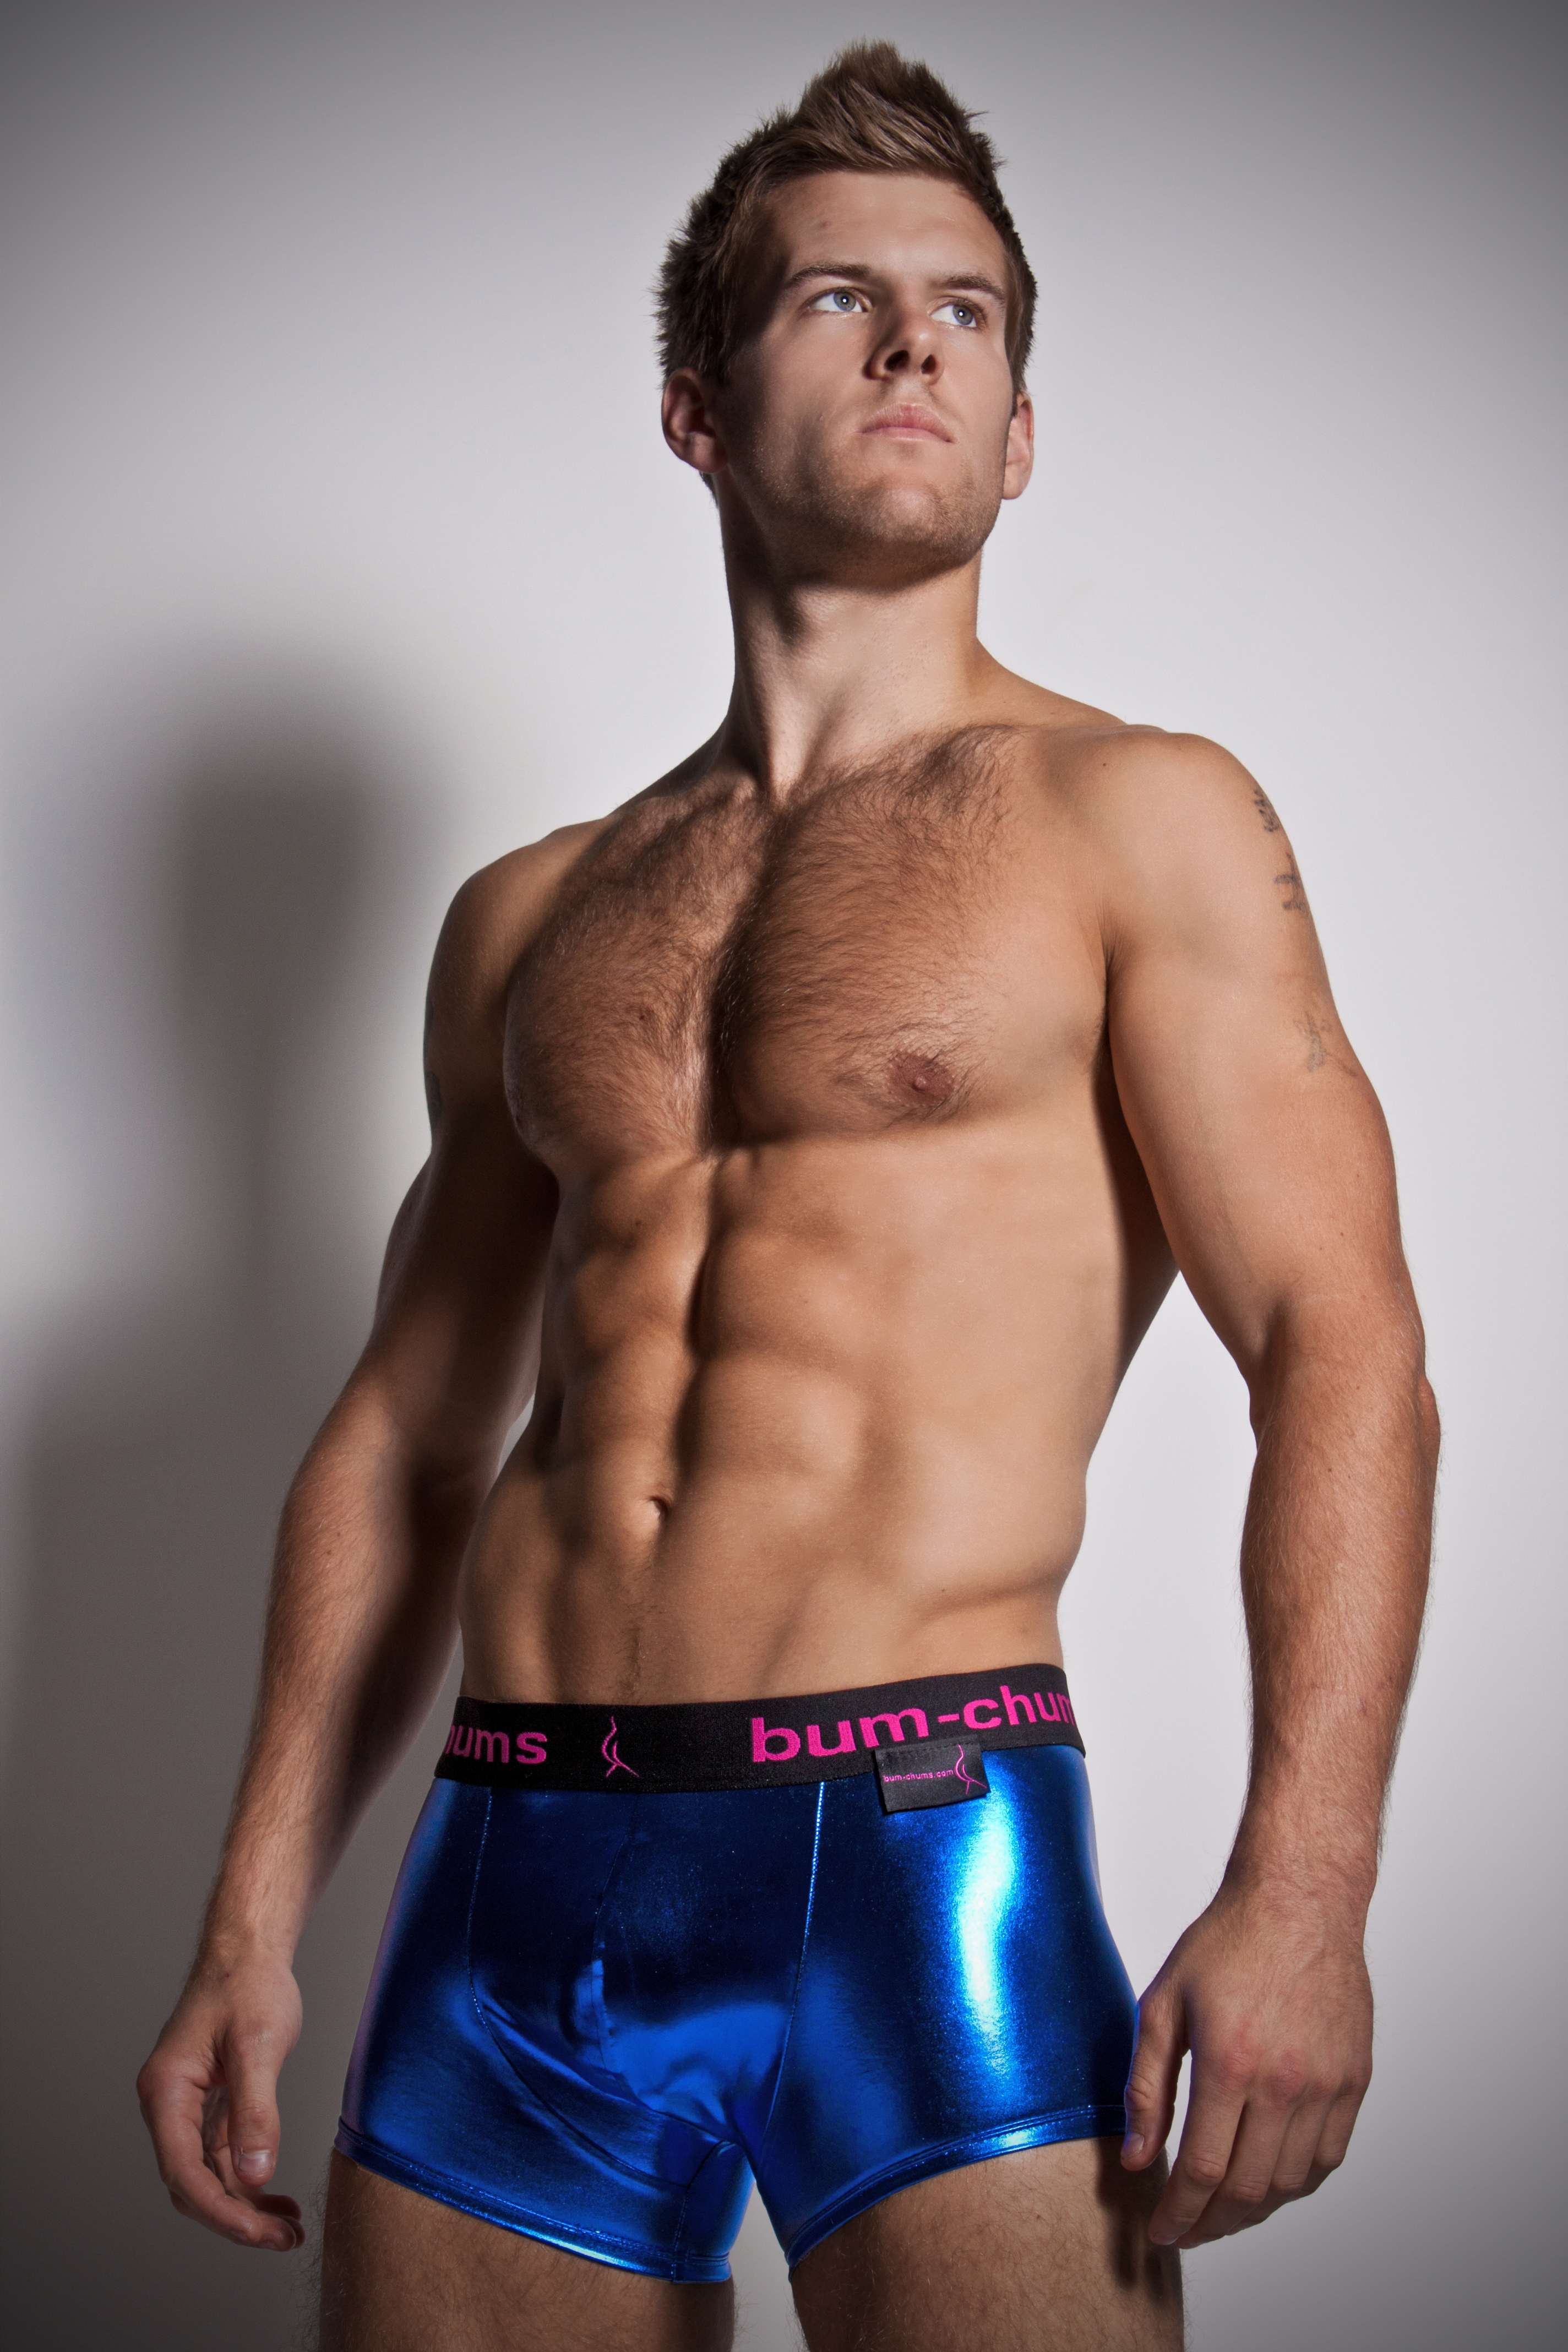 ... and so the birth of Bum-chums collection of men's underwear was born.  Check out this fun collection of men's underwear at Dead Good Undies!